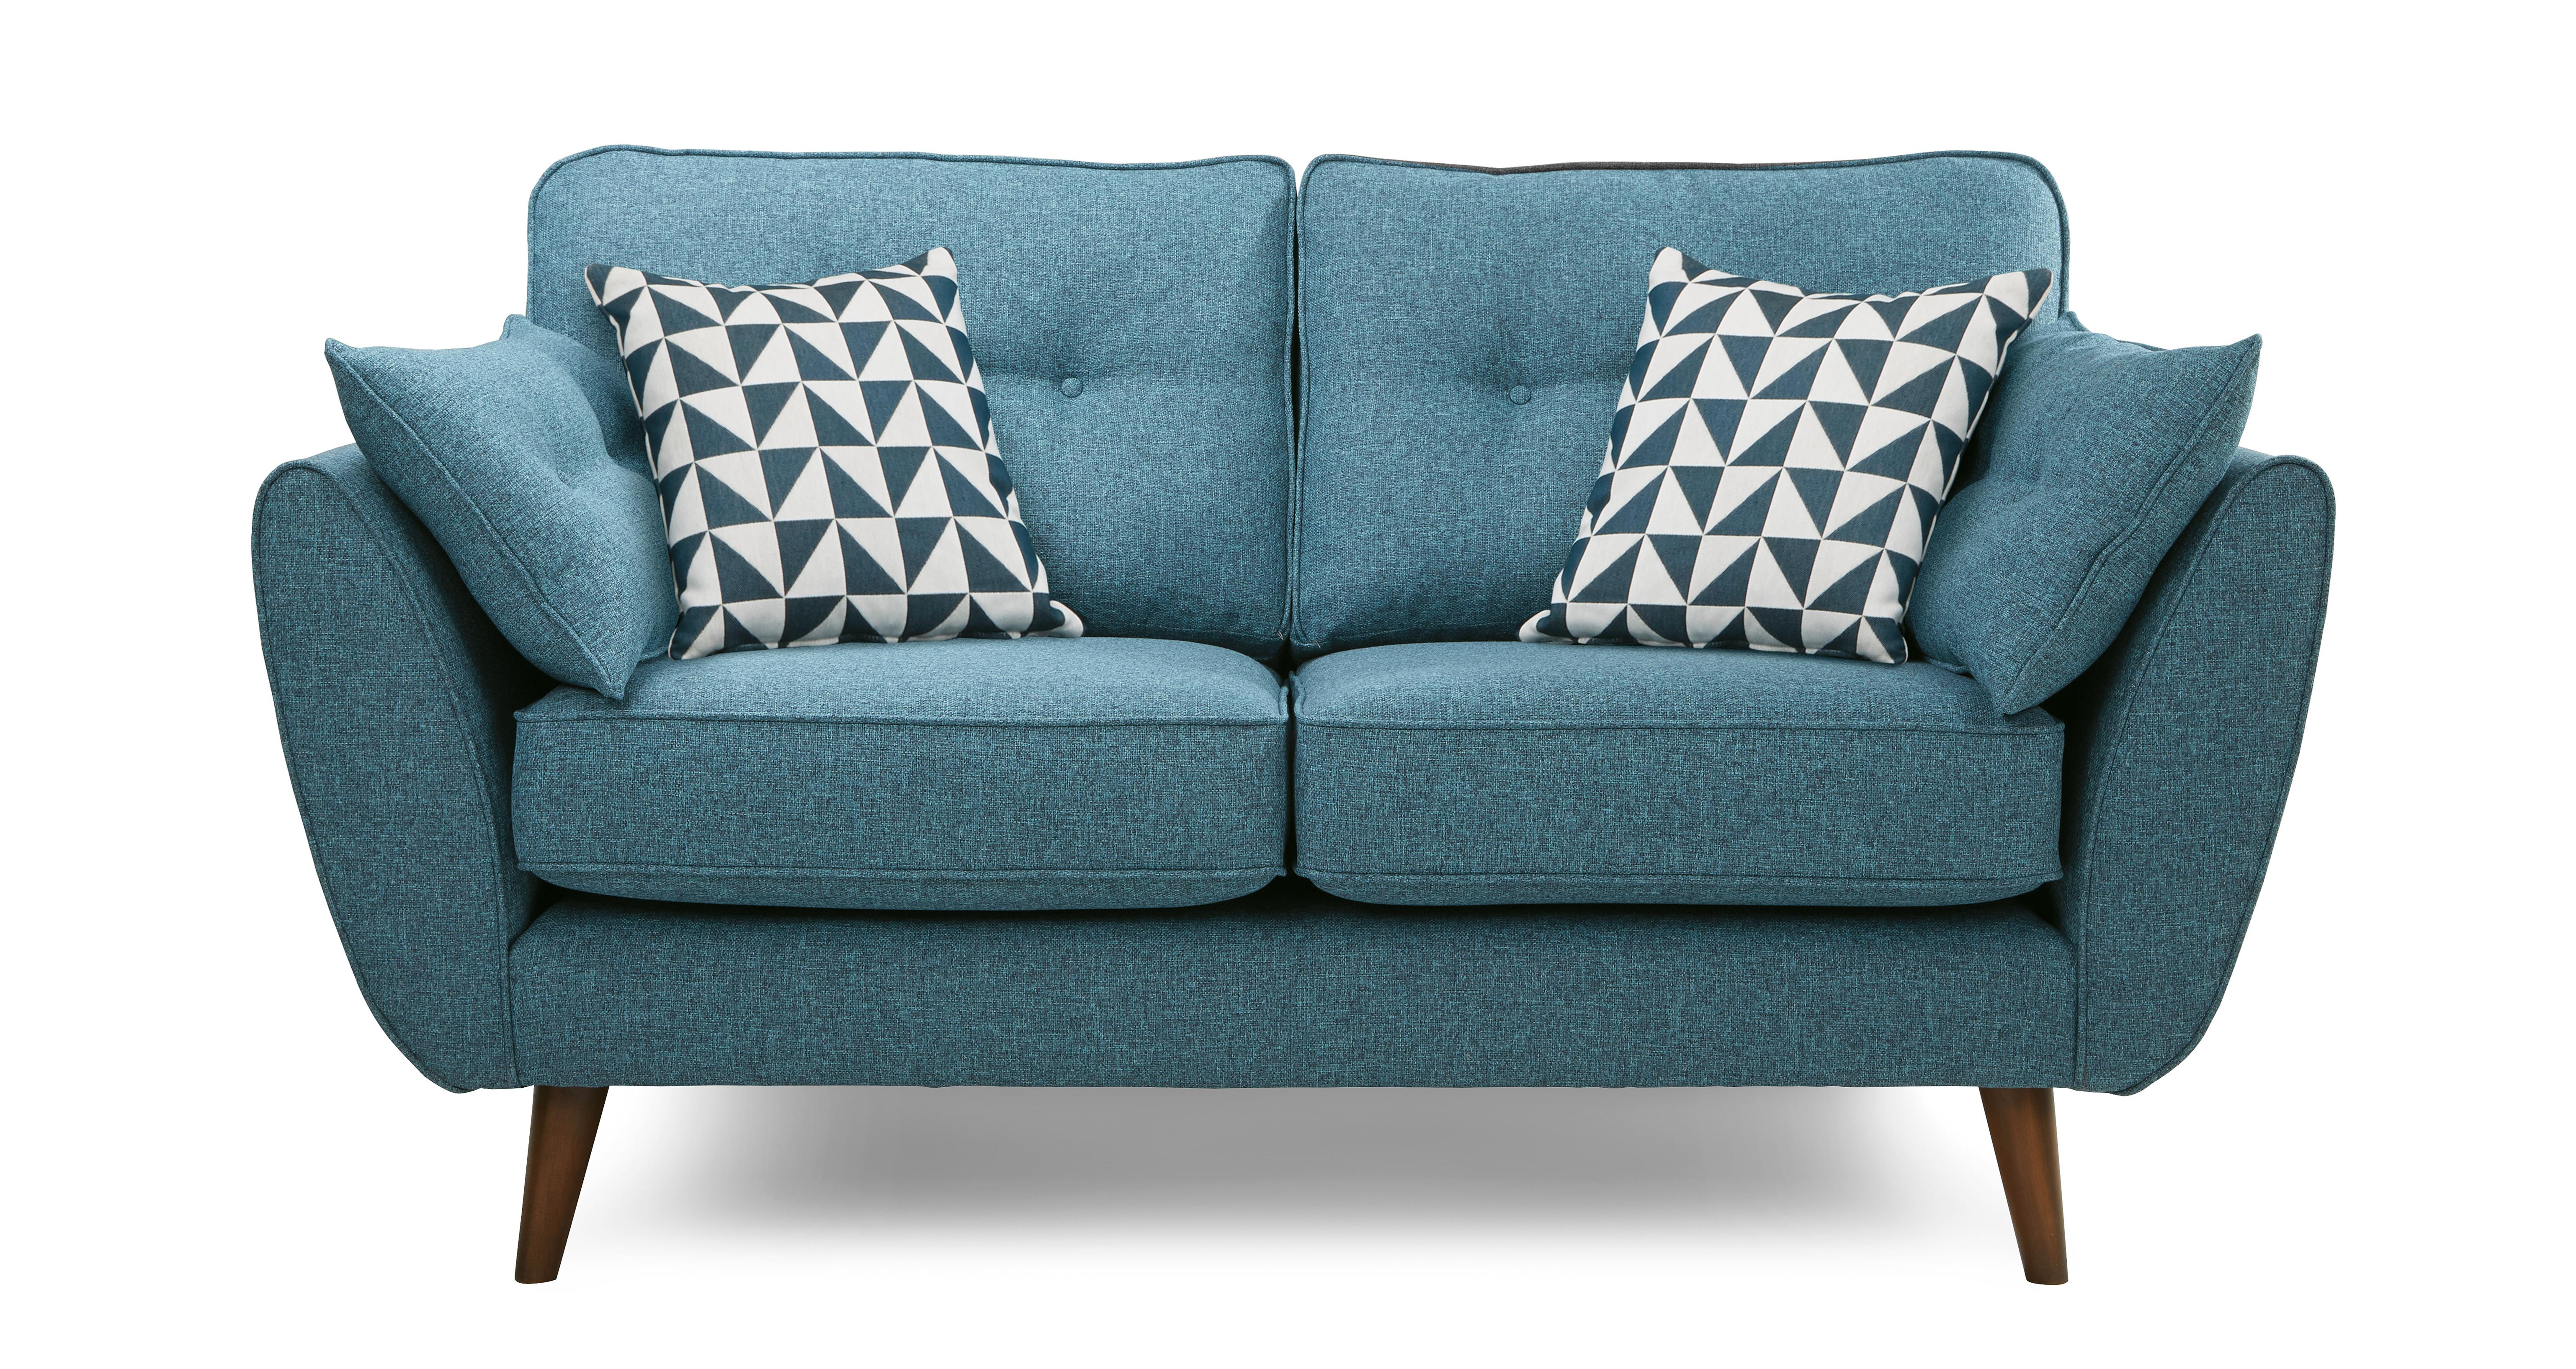 Zinc 2 Seater Sofa | DFS Ireland